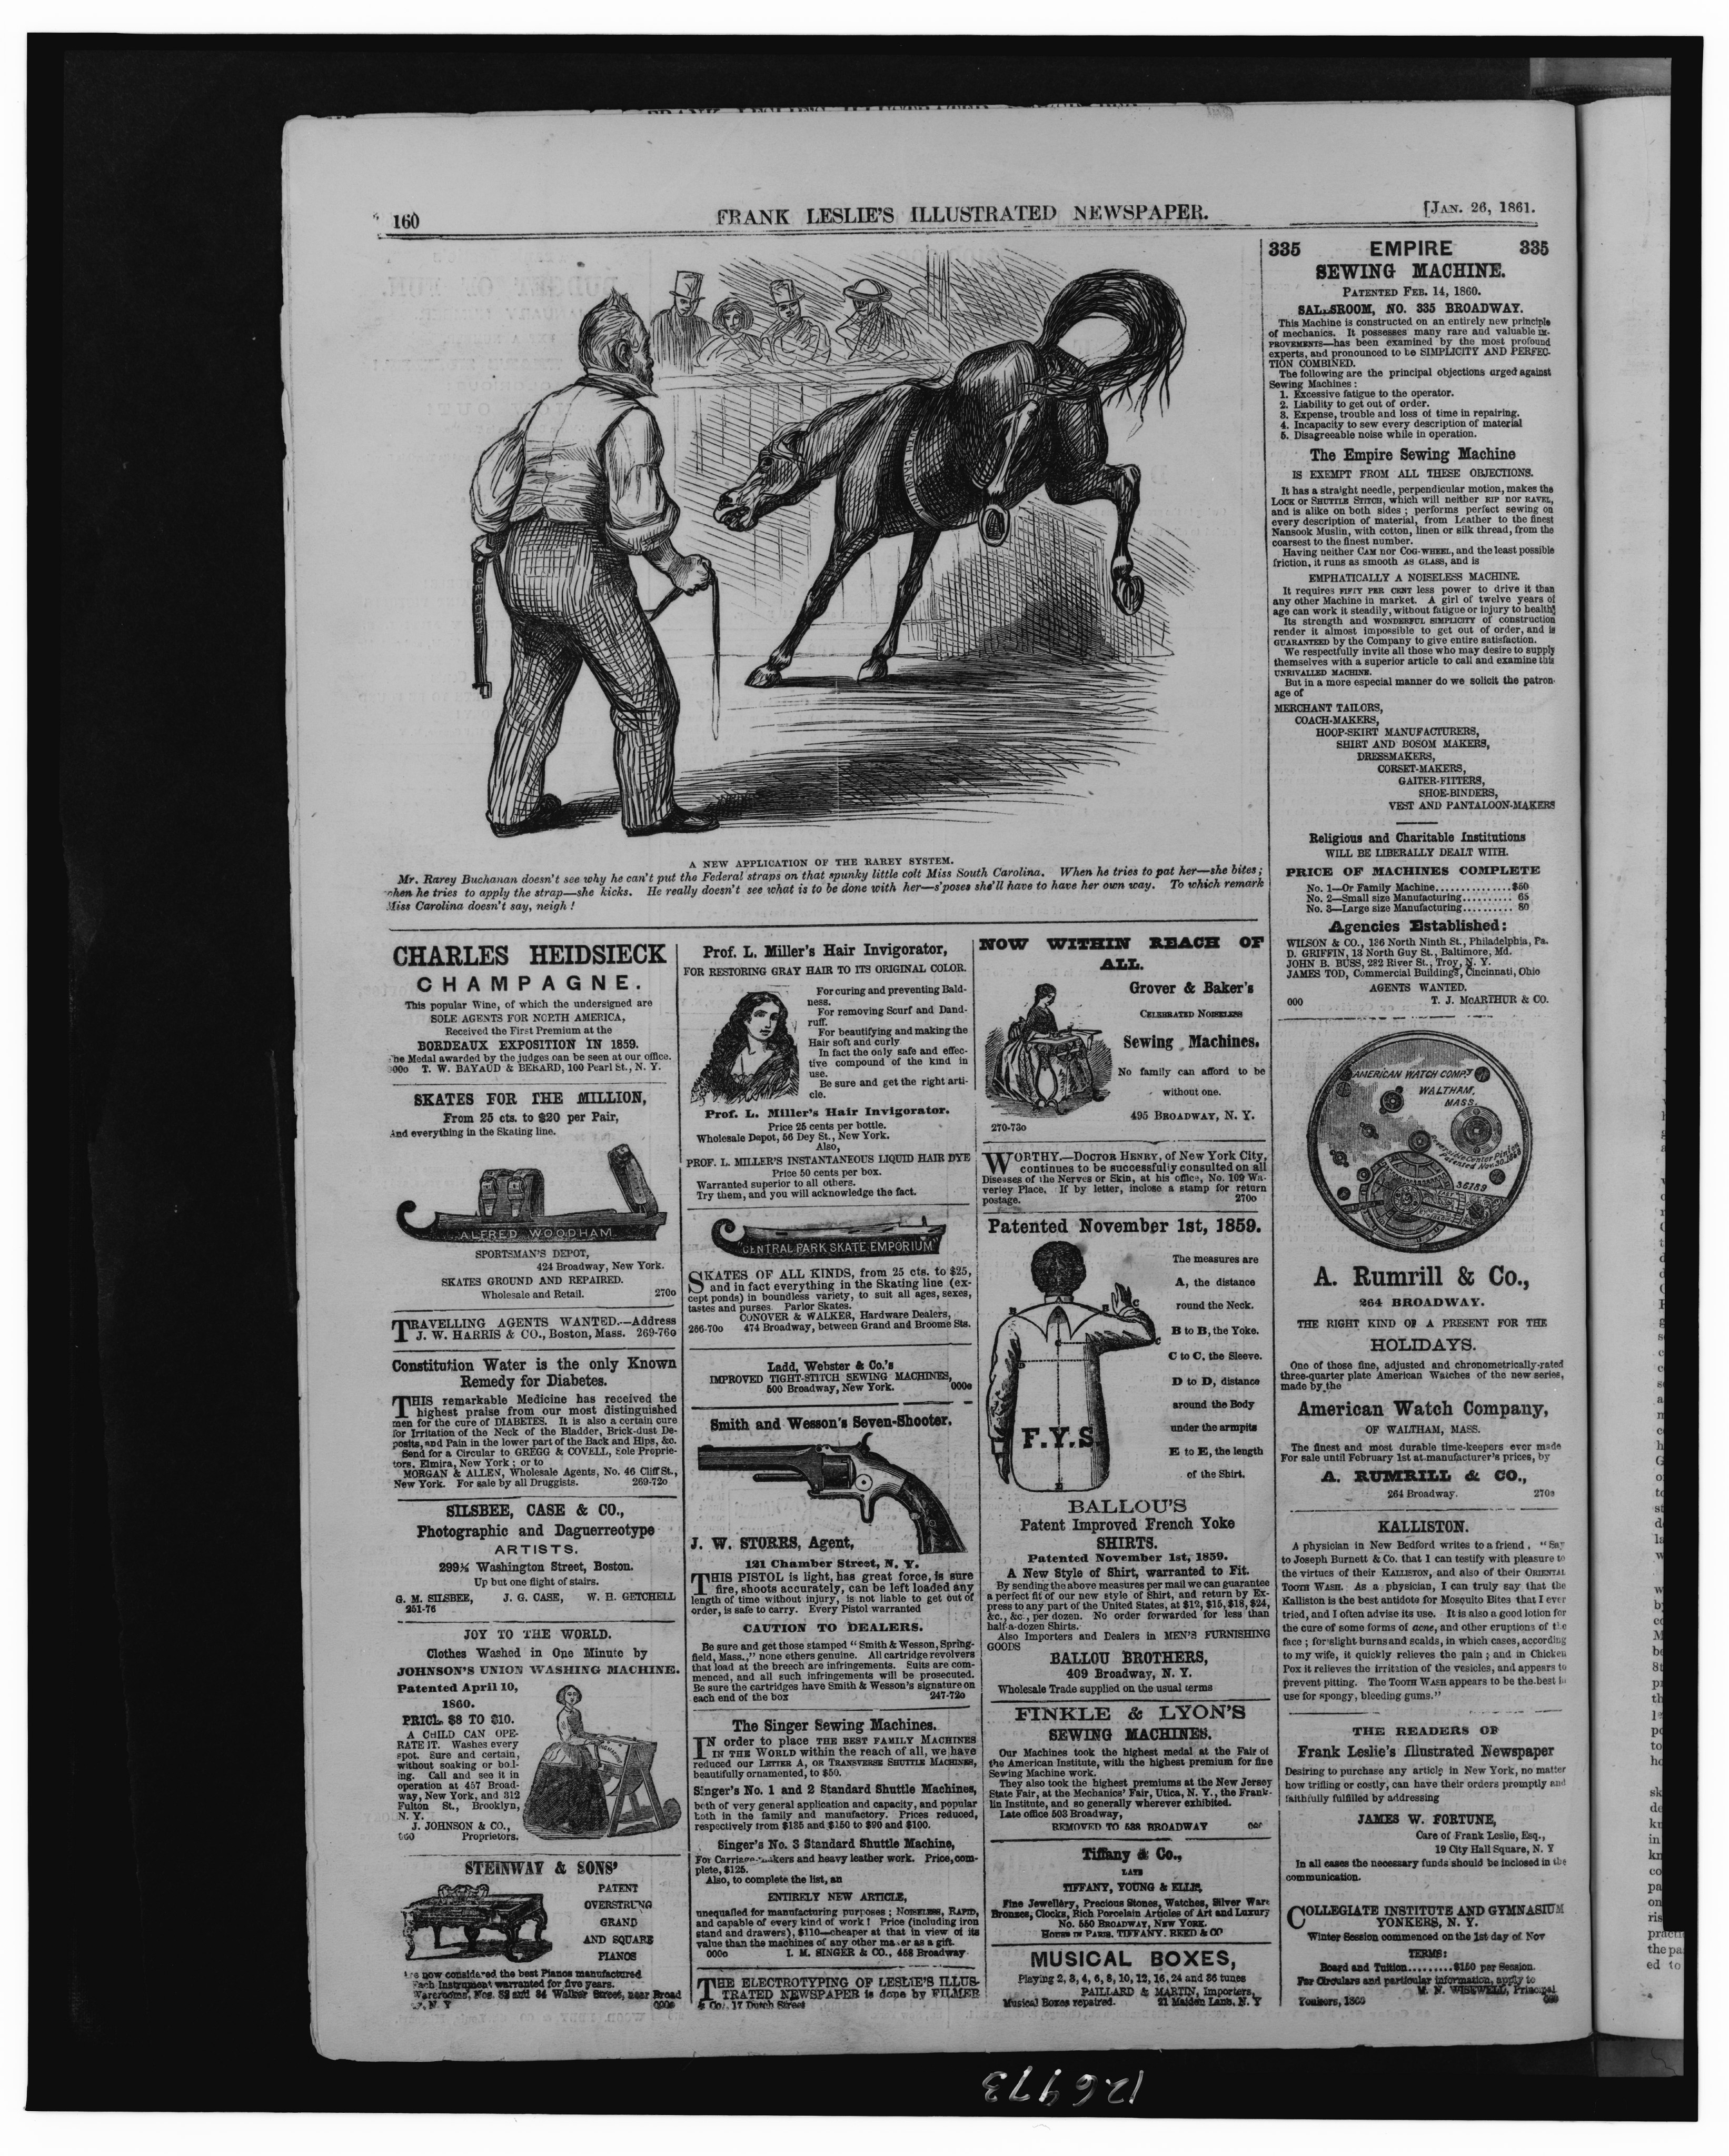 File:Full page of advertisements and cartoon,